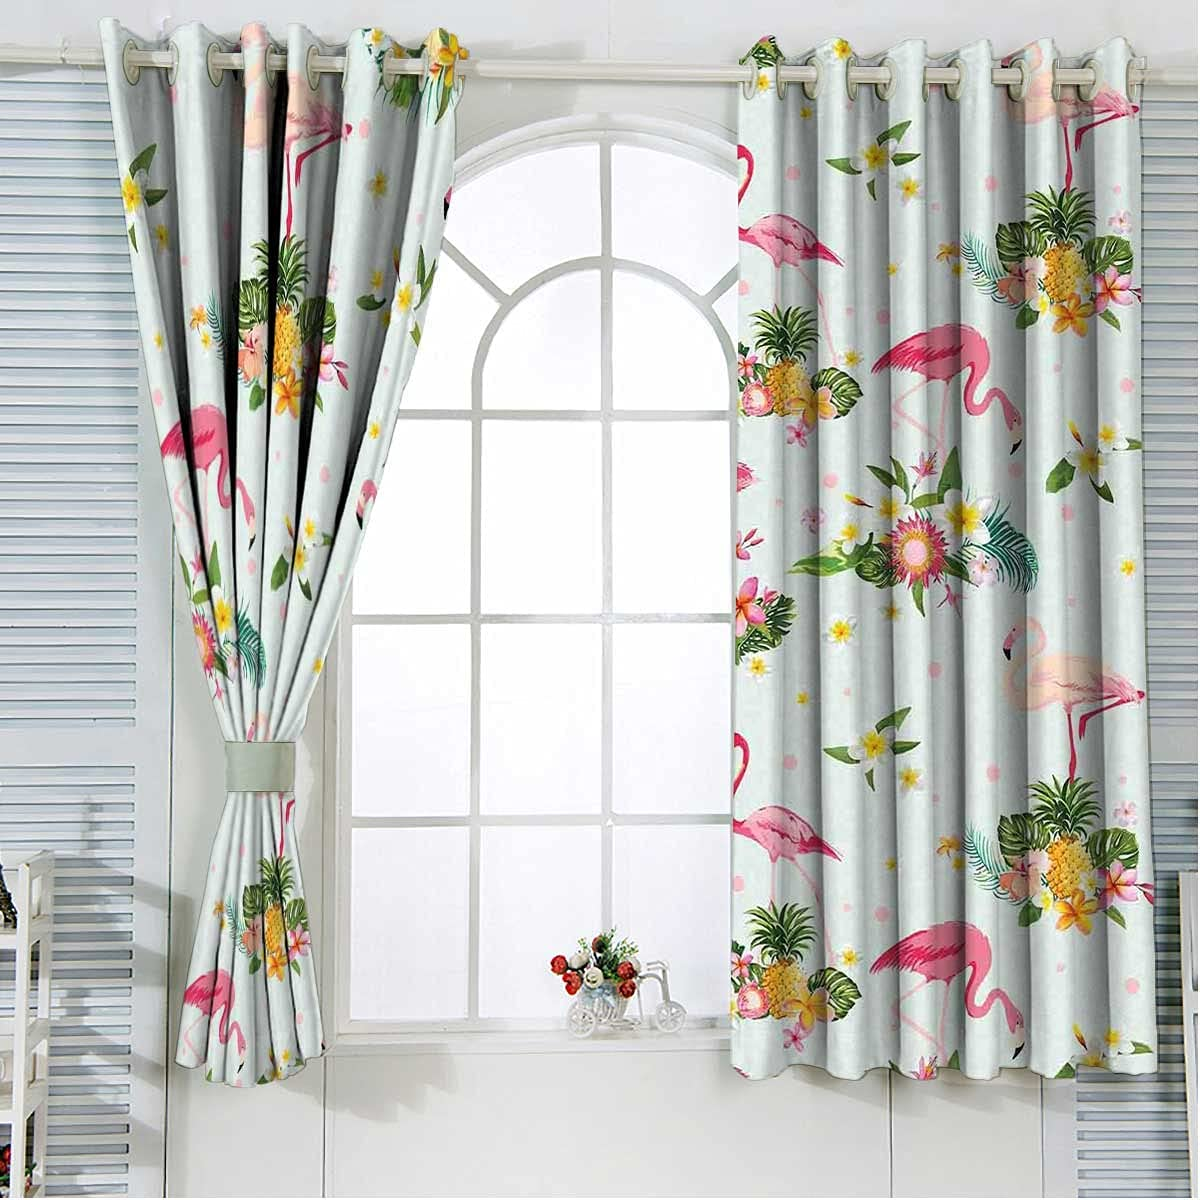 Flamingo Bedroom Blackout Curtains 63 Yellow Milwaukee Mall Inches Gree Free shipping anywhere in the nation Length